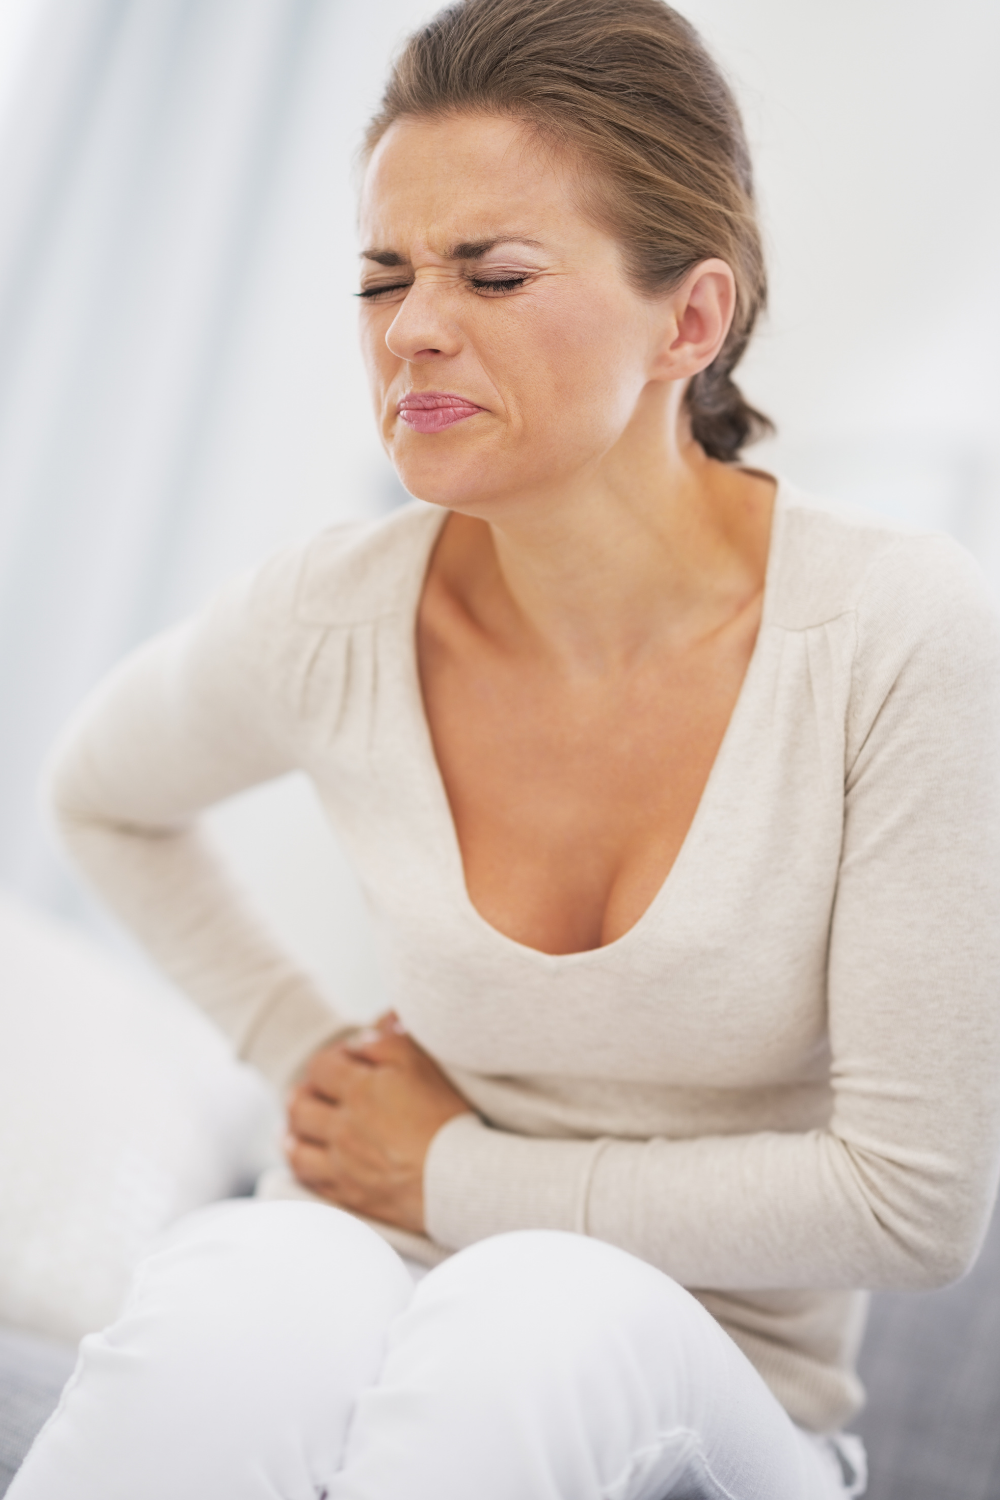 4 Major Women's Health Issues that Shouldn't Be Ignored